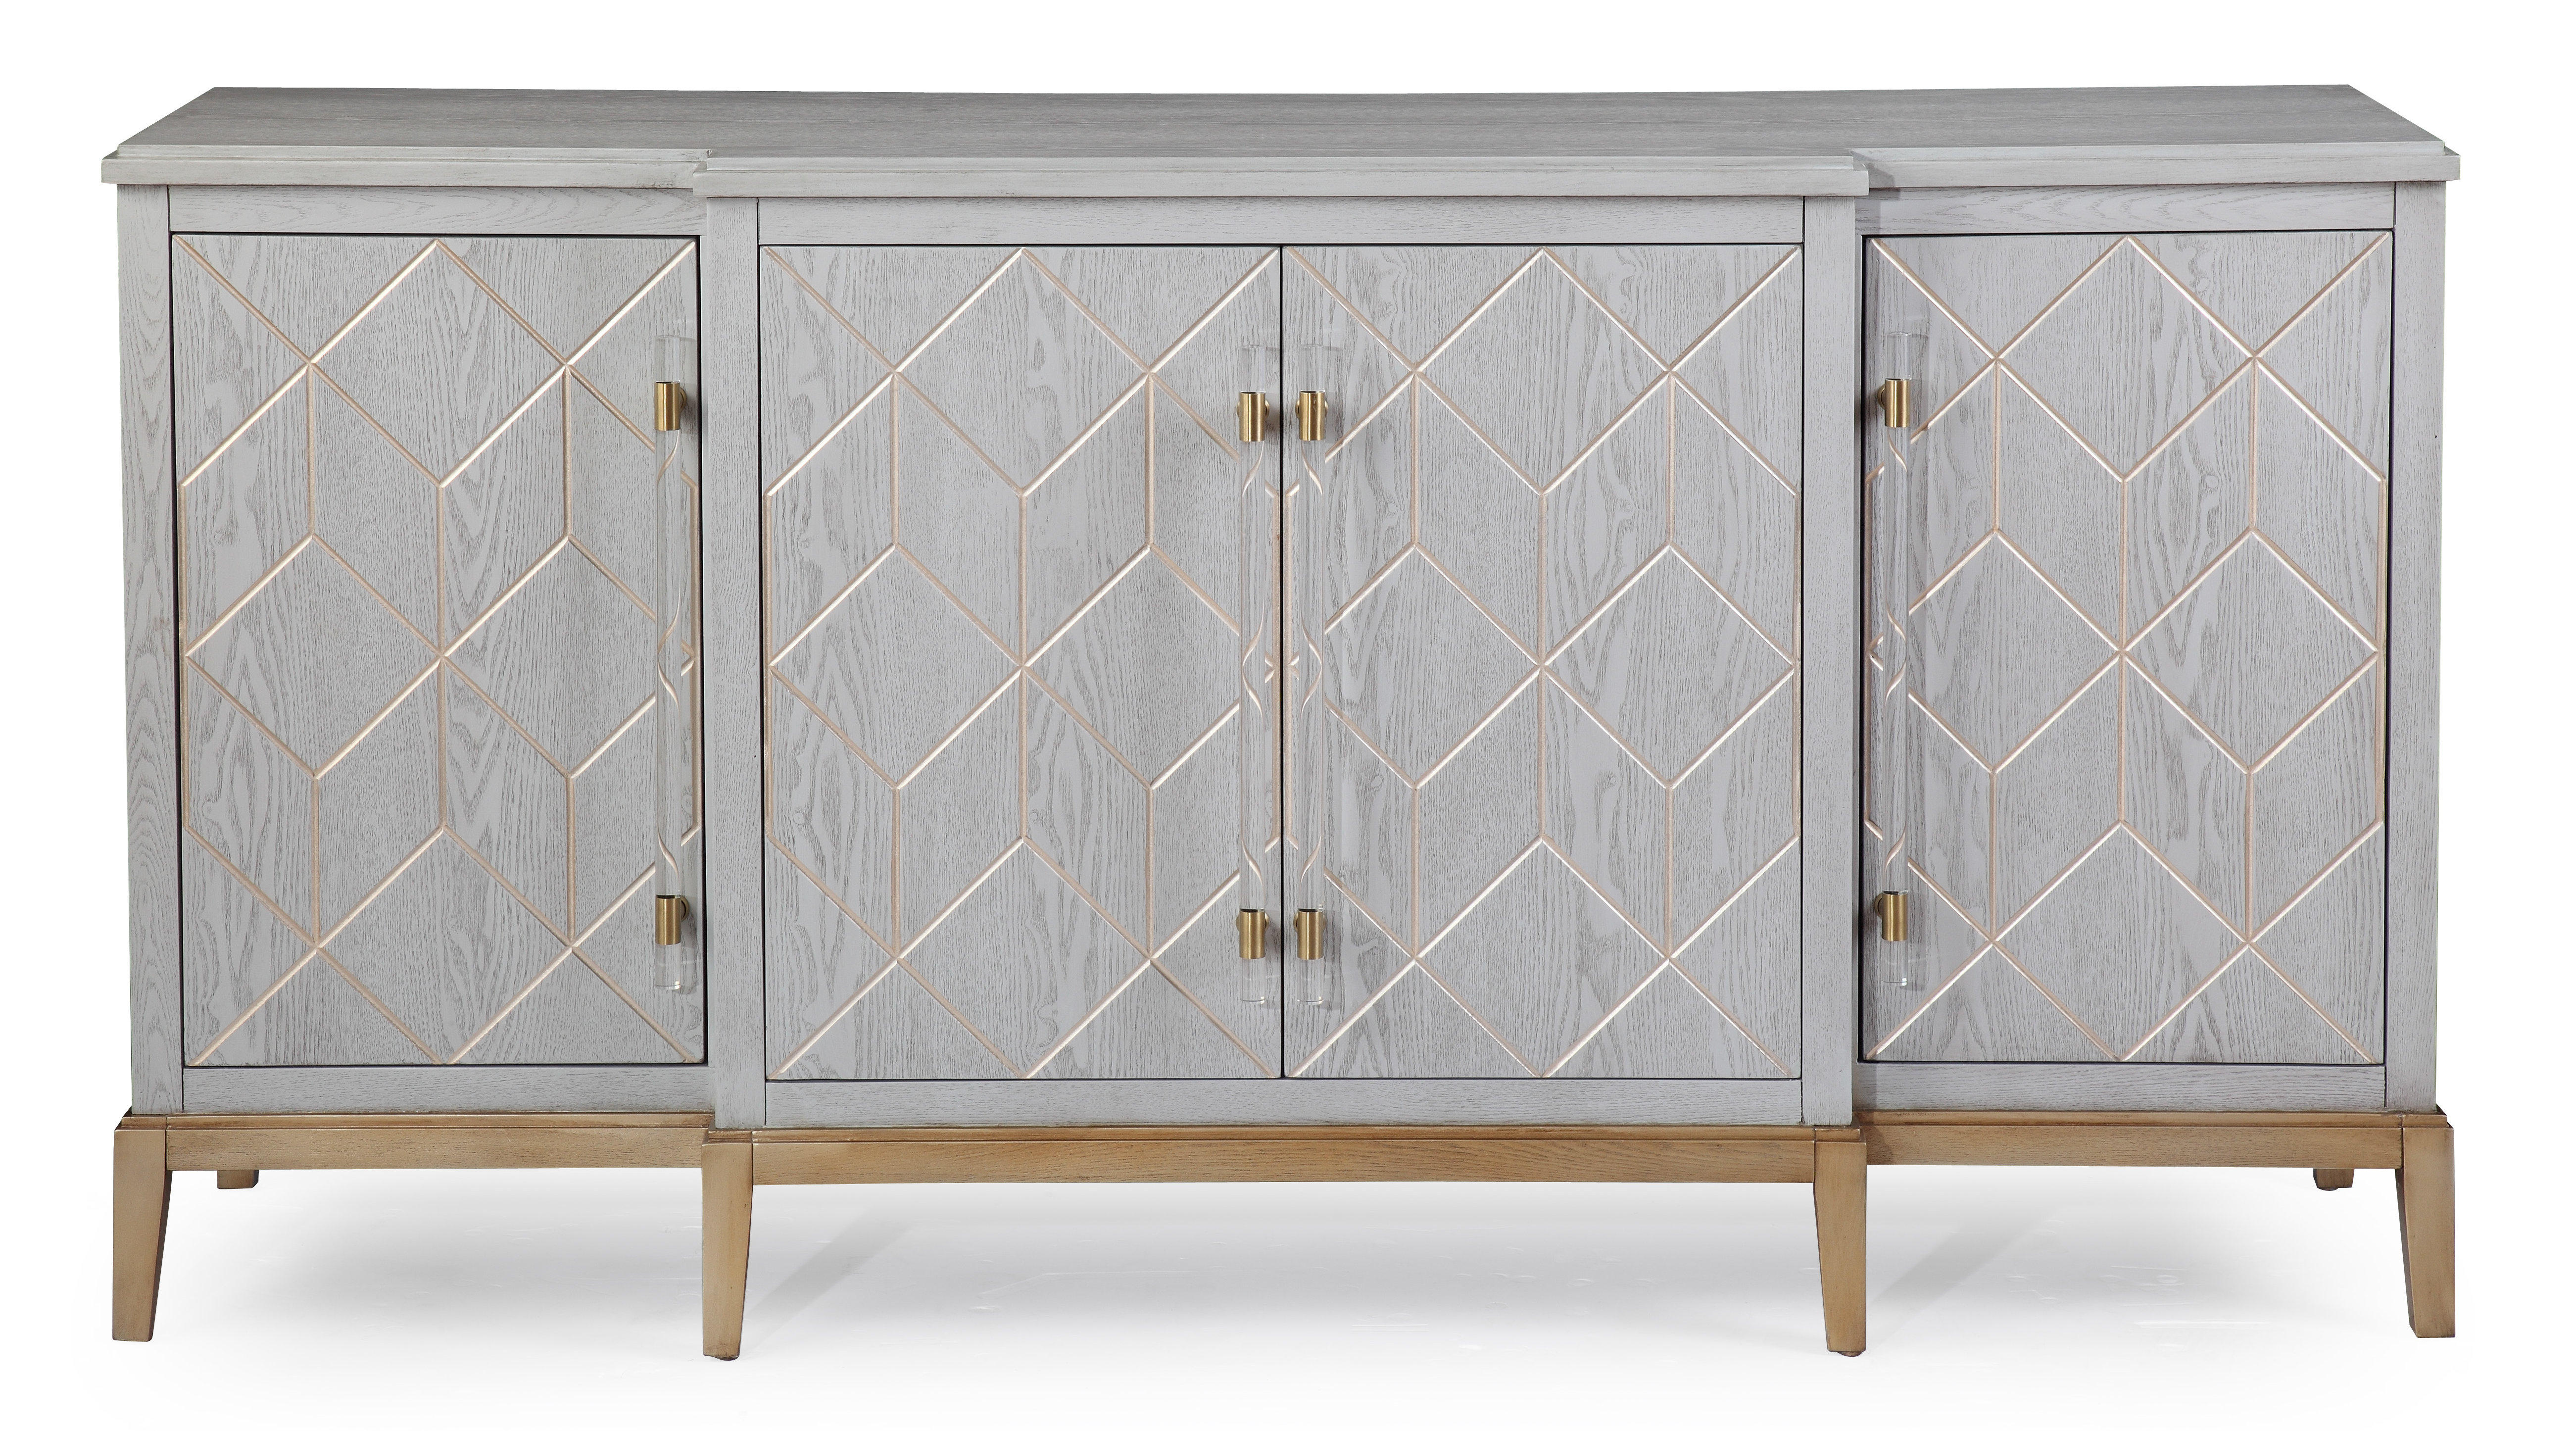 Farmhouse & Rustic Sideboards & Buffets | Birch Lane In Palisade Sideboards (View 7 of 30)